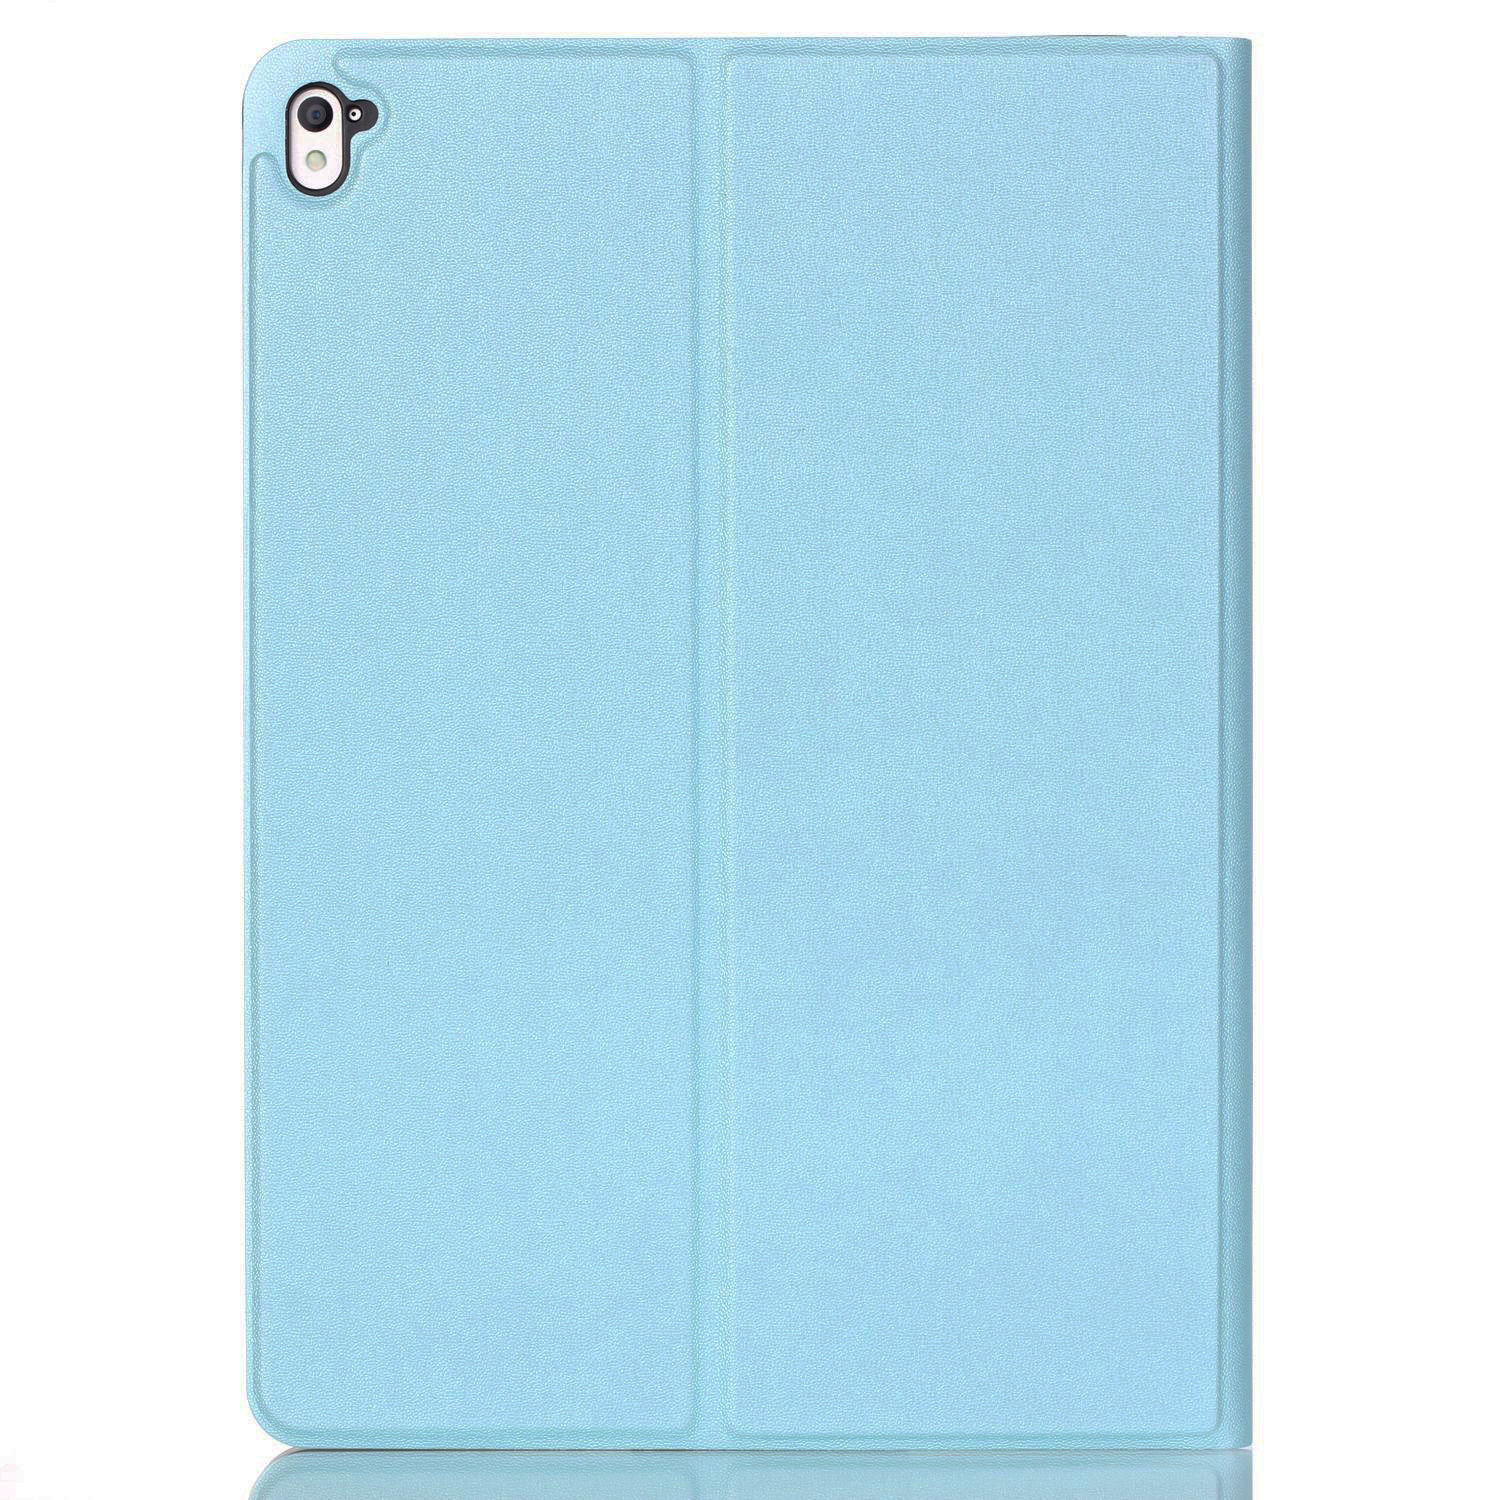 Custodia-Per-Apple-IPAD-Pro-IN-9-7-Pollici-Case-Cover-Protettiva-Skin-Shell miniatura 27